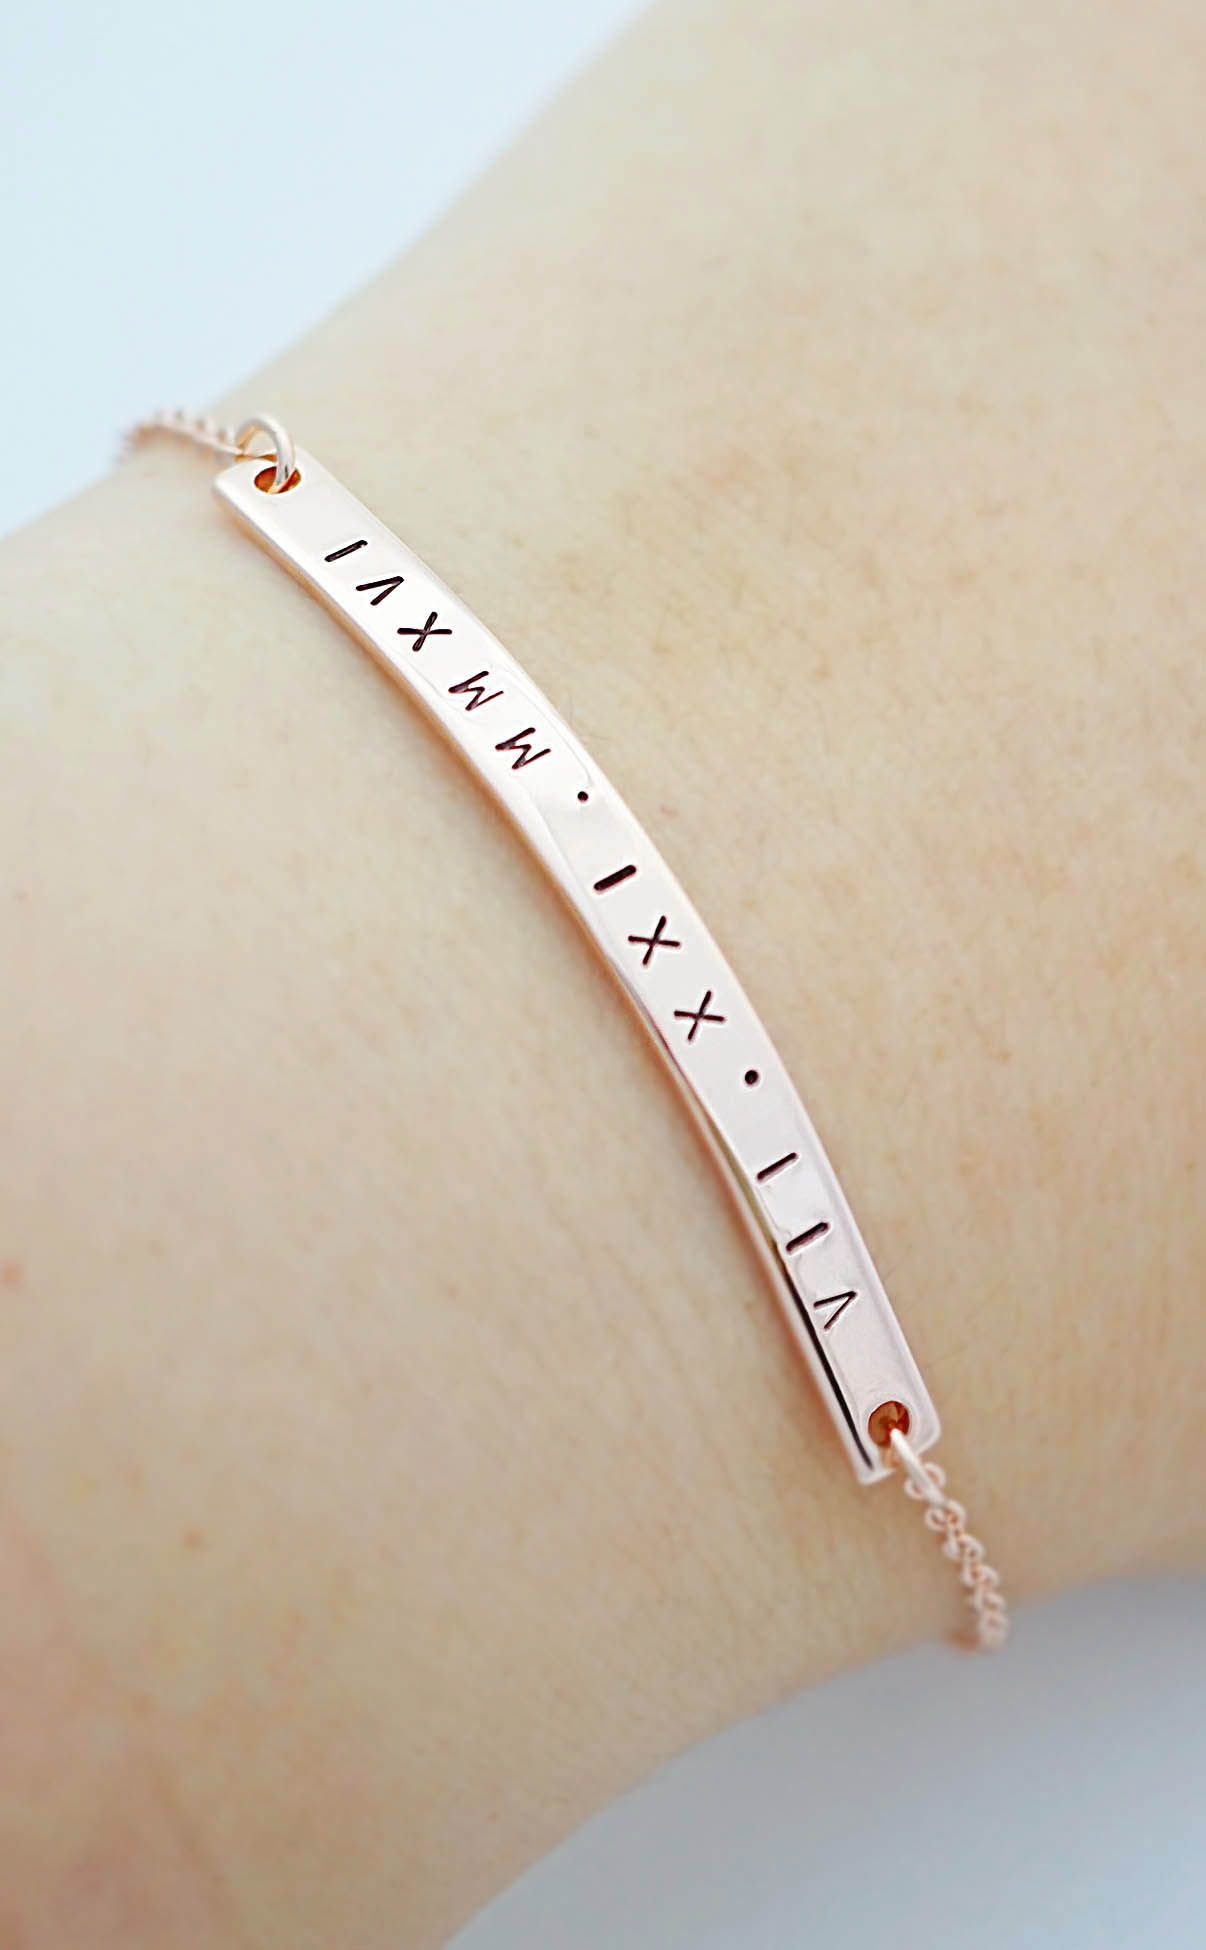 personalized by jewelry products kisses image isabelle grace unicorn bracelet